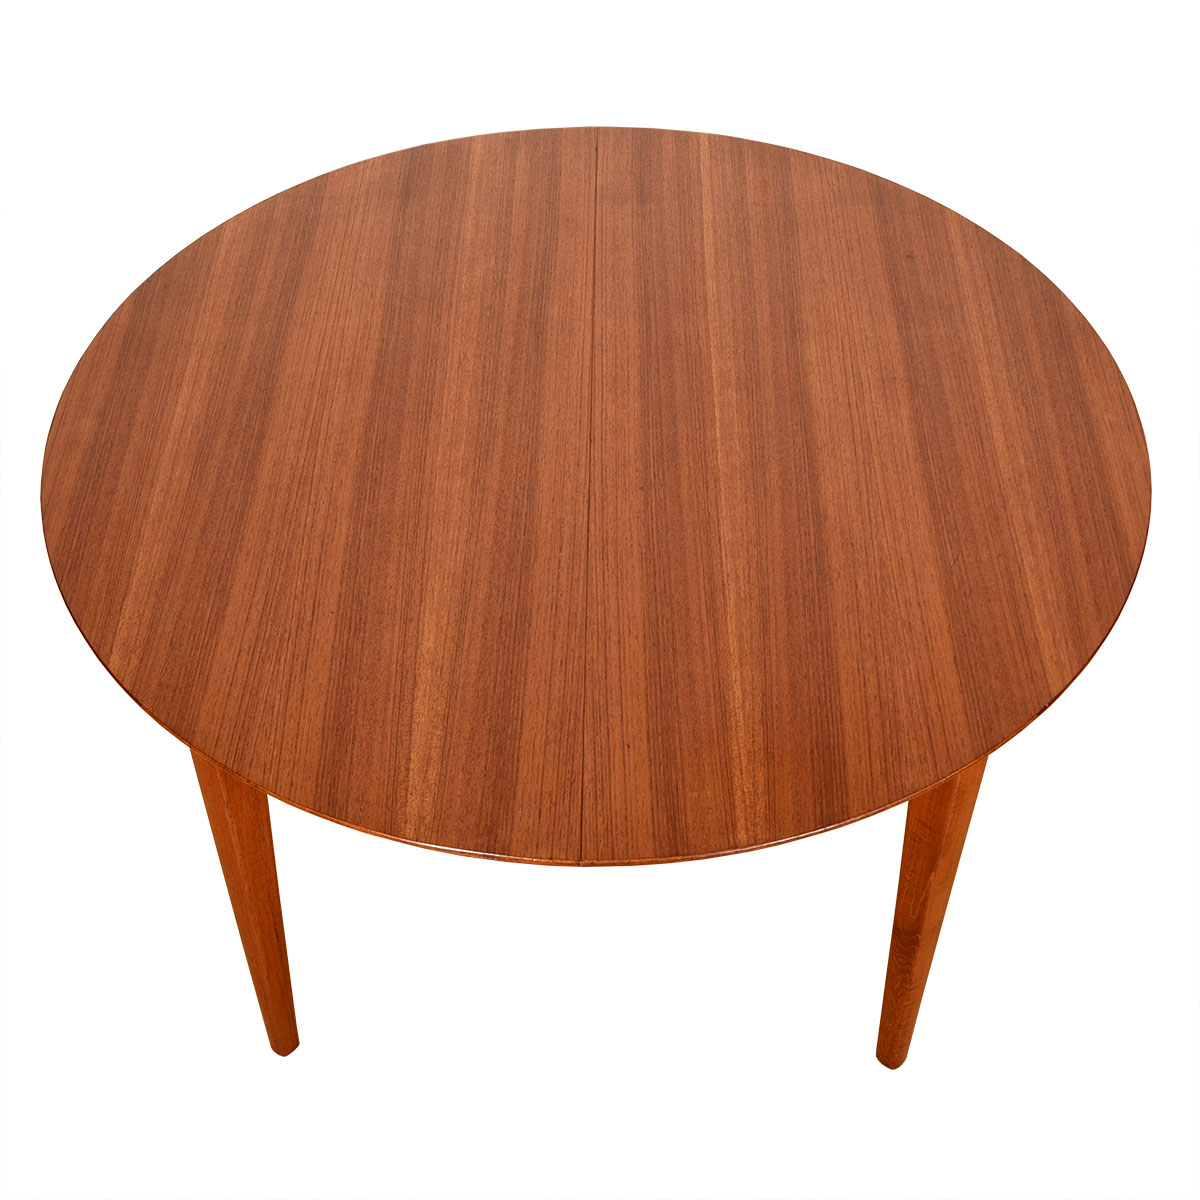 4 Leaves Round-to-Oval Danish Modern Teak Dining Table